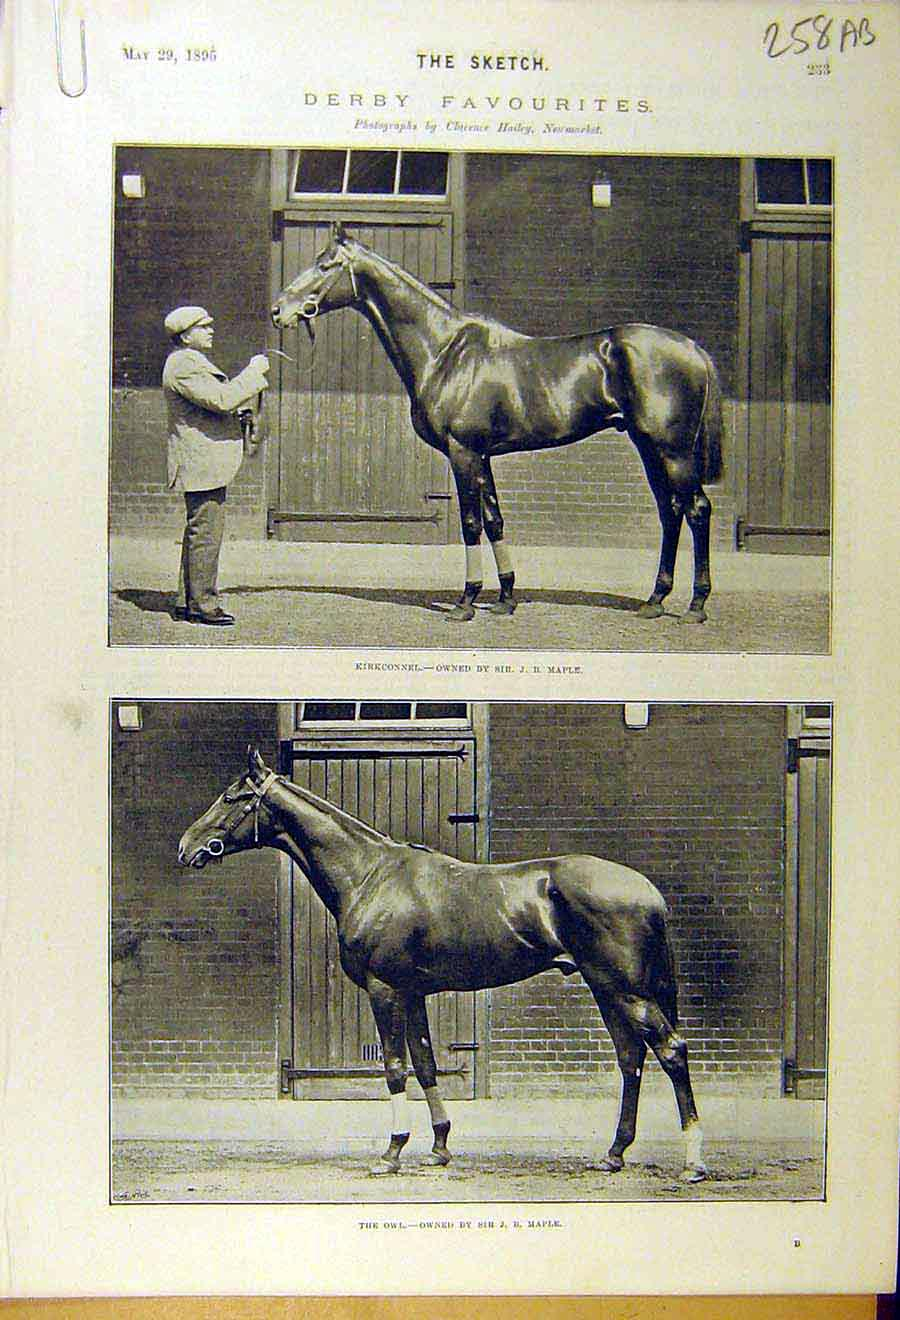 Print 1895 Derby Favourites Race-Horse Kirkconnel Owl Solaro 58A8661 Old Original